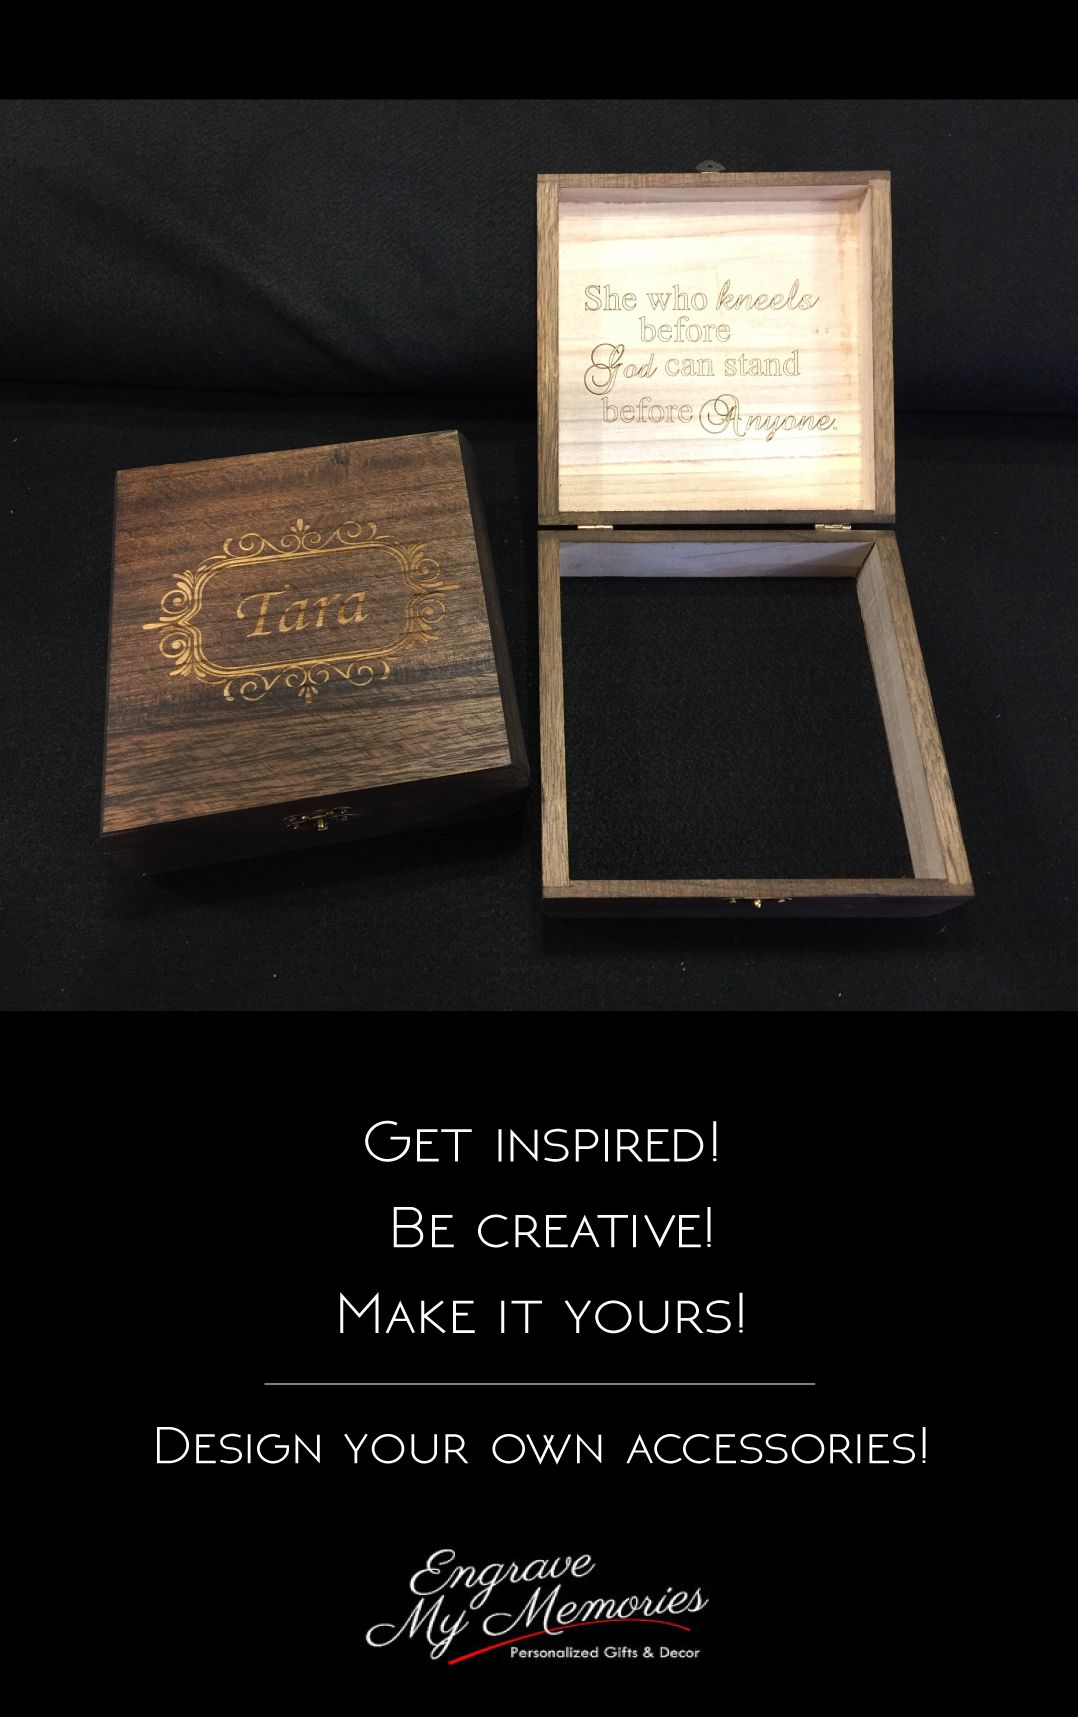 Personalize Your Own Jewelry Box Most Popular and Best Image Jewelry